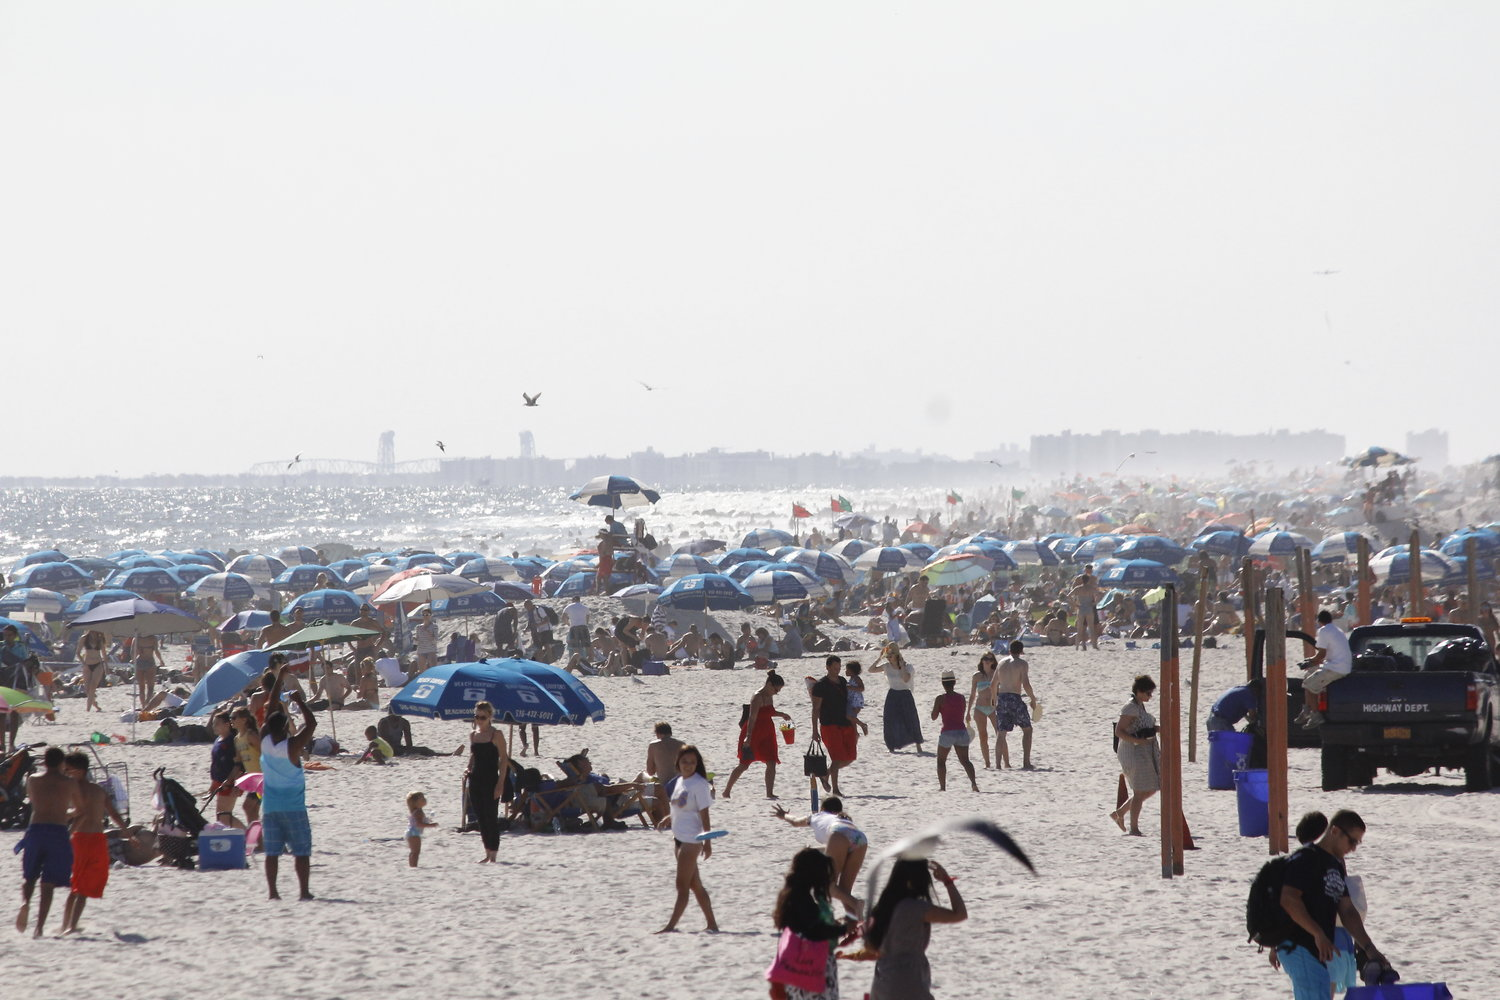 The Long Beach City Council voted to open the beach on Saturday. Photo was taken before the Covid-19 pandemic.